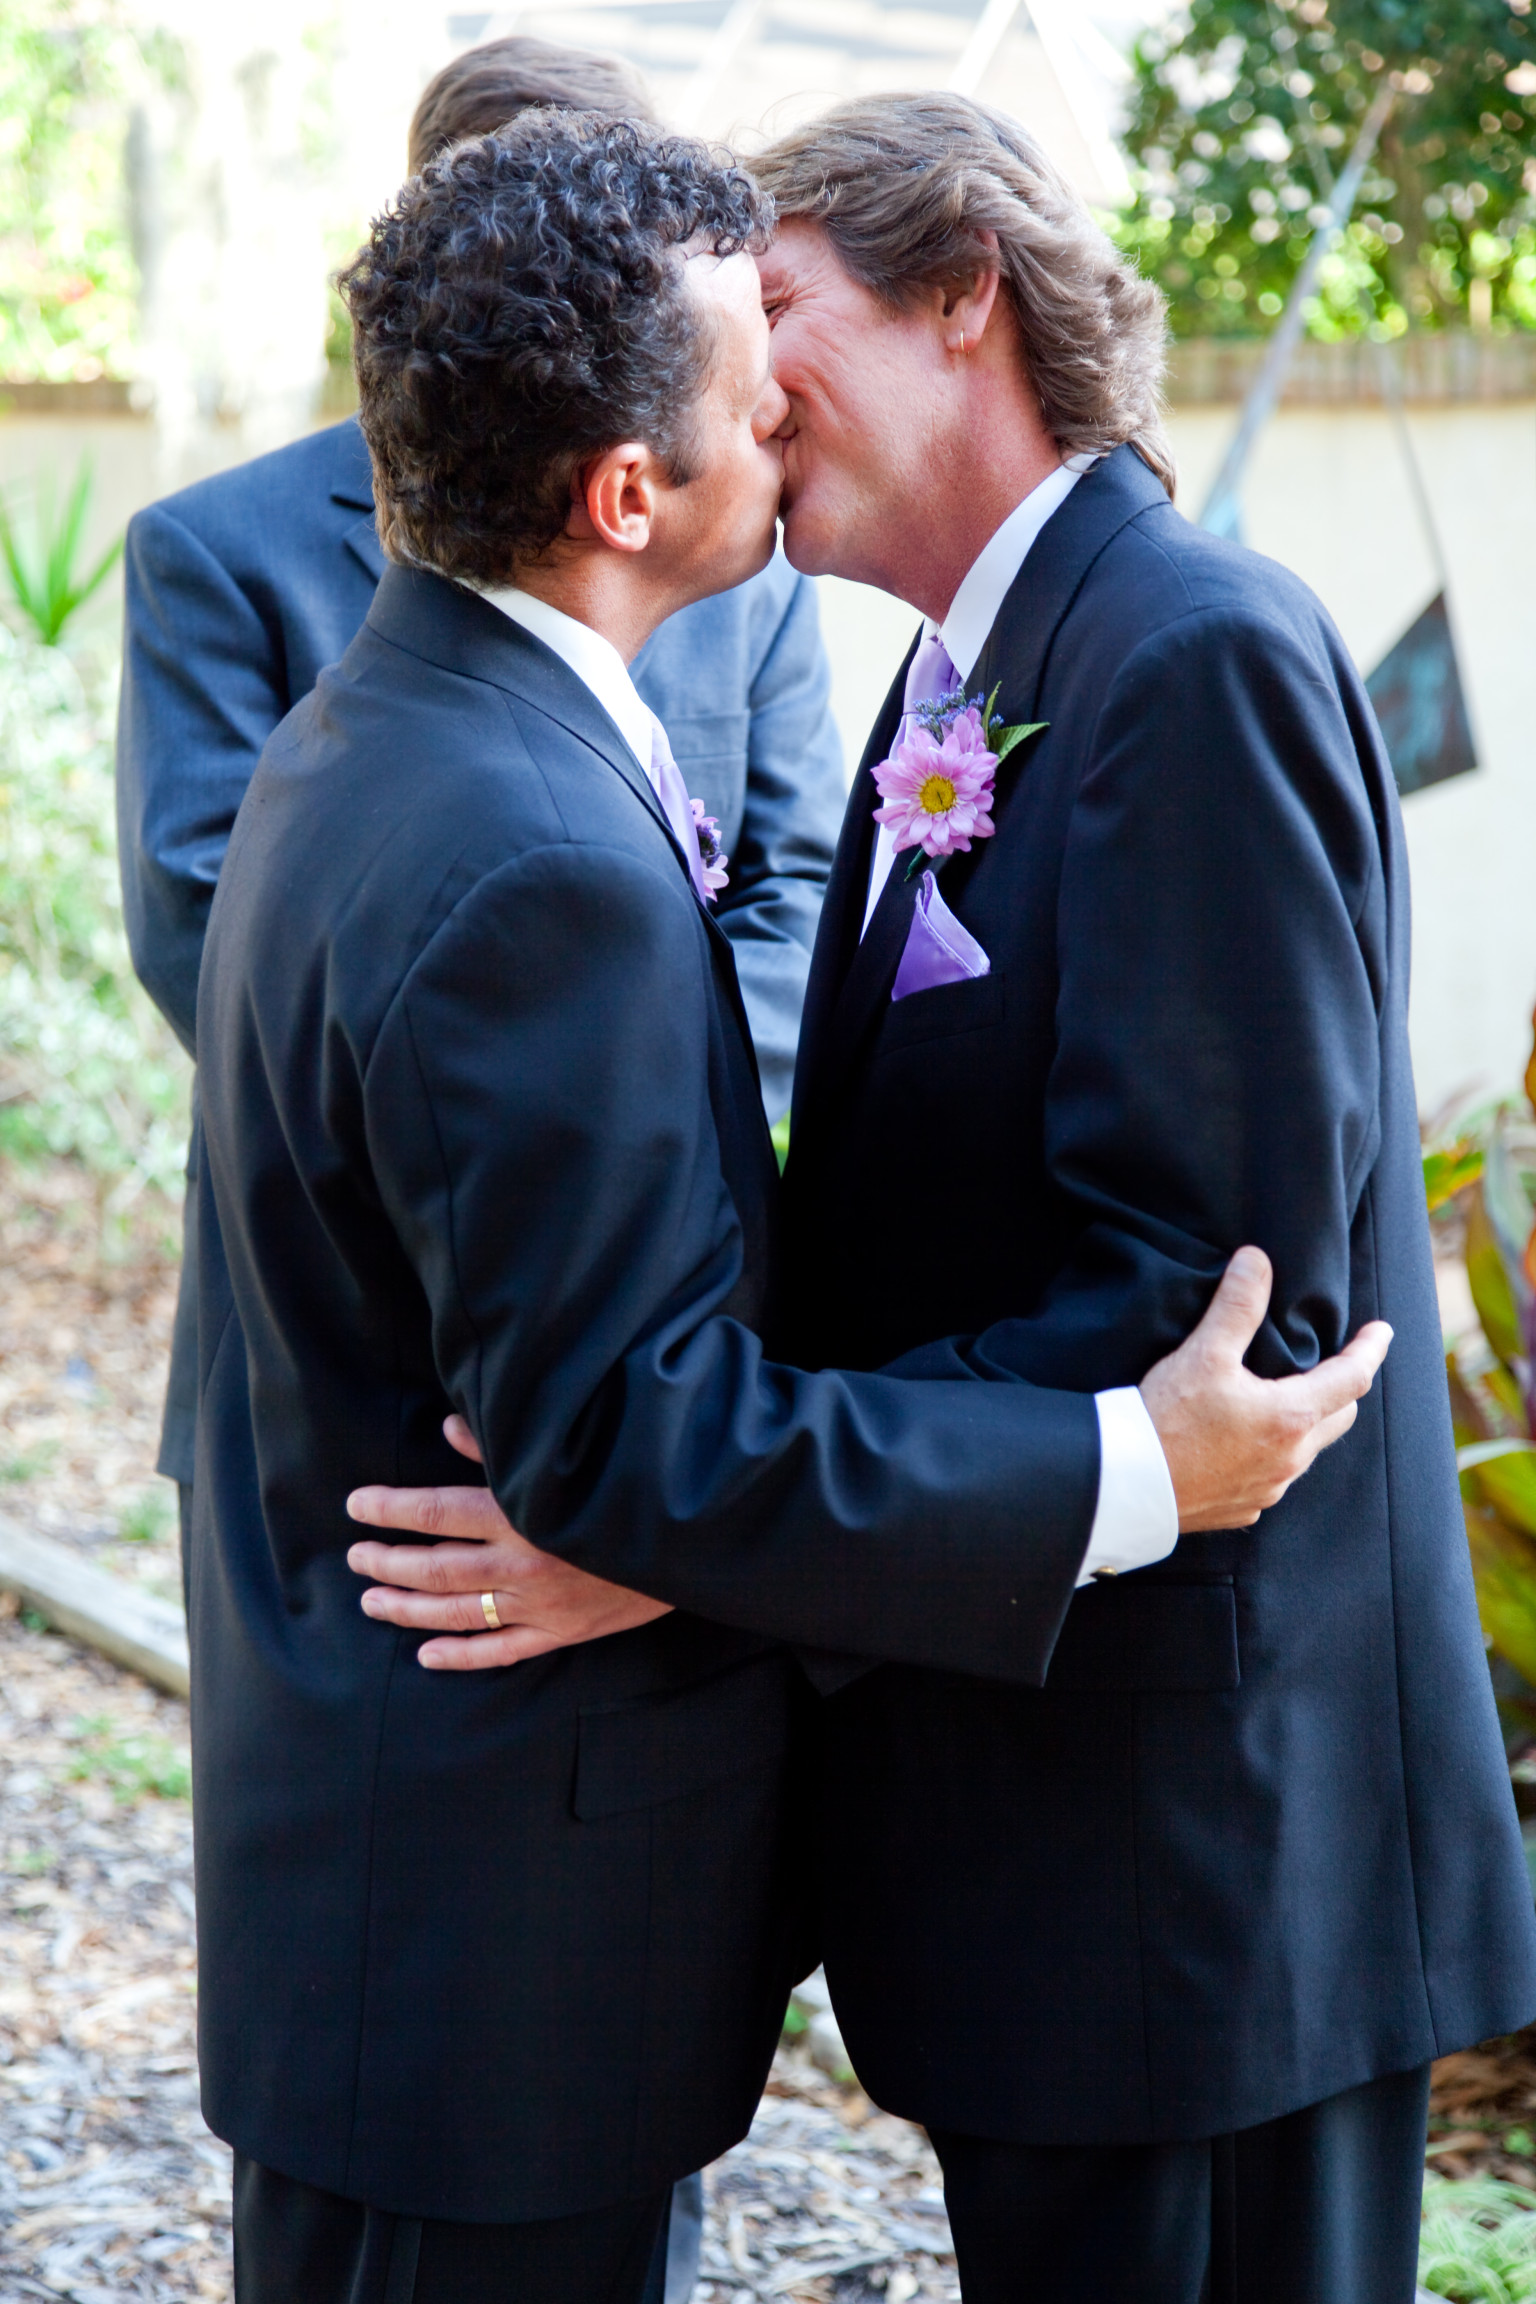 from Brady gay marriages are not human nature